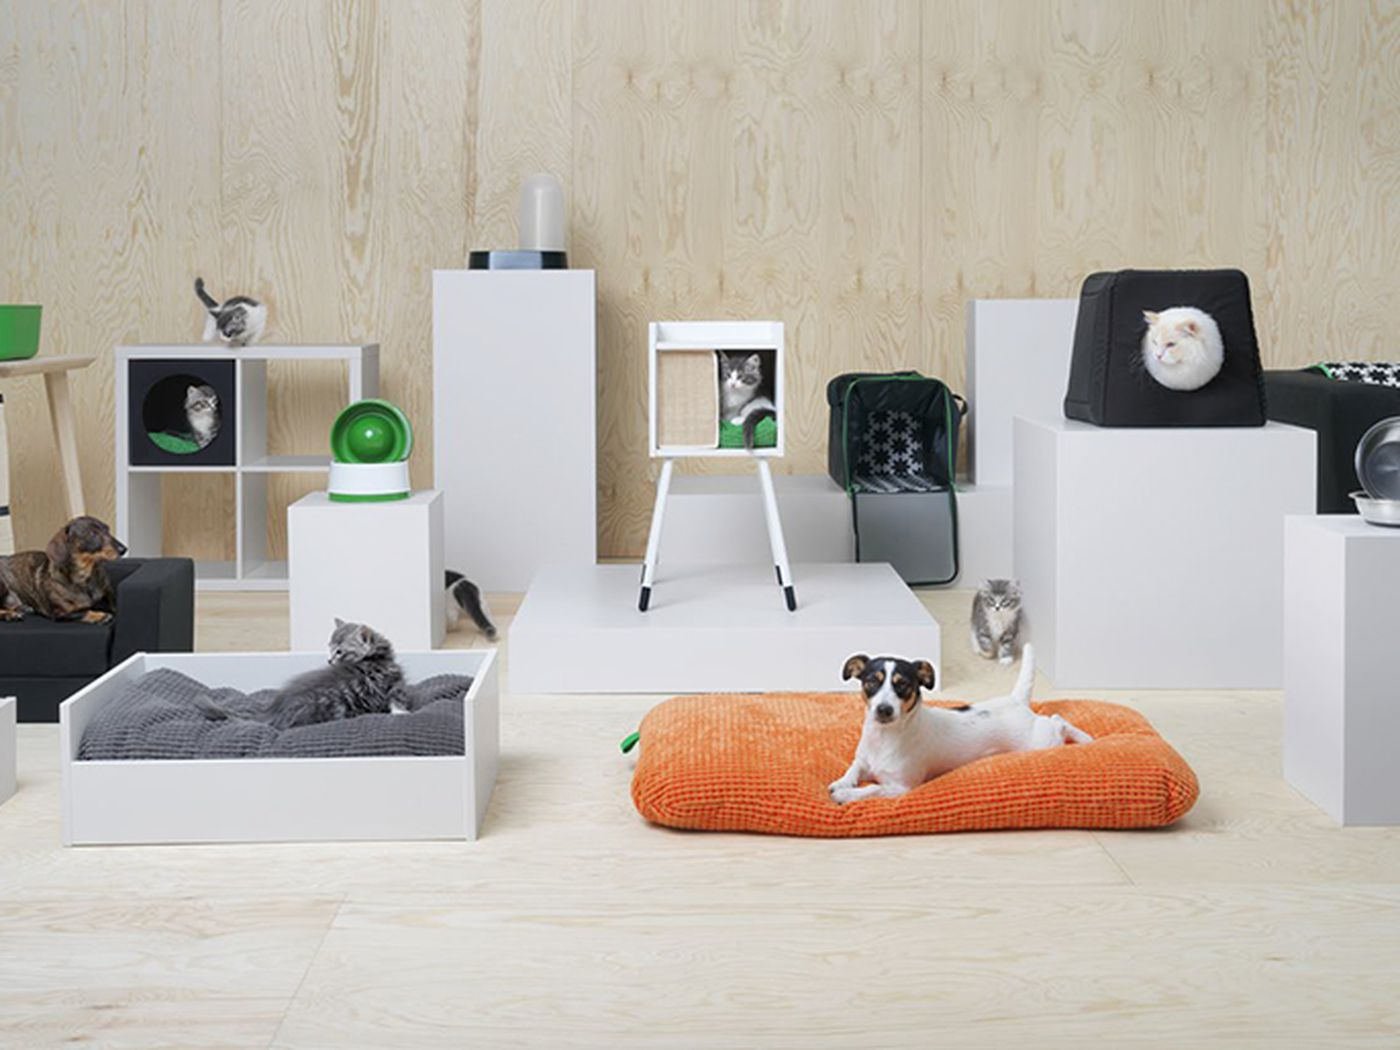 Design Kast Ikea : Ikea launches pet furniture collection curbed